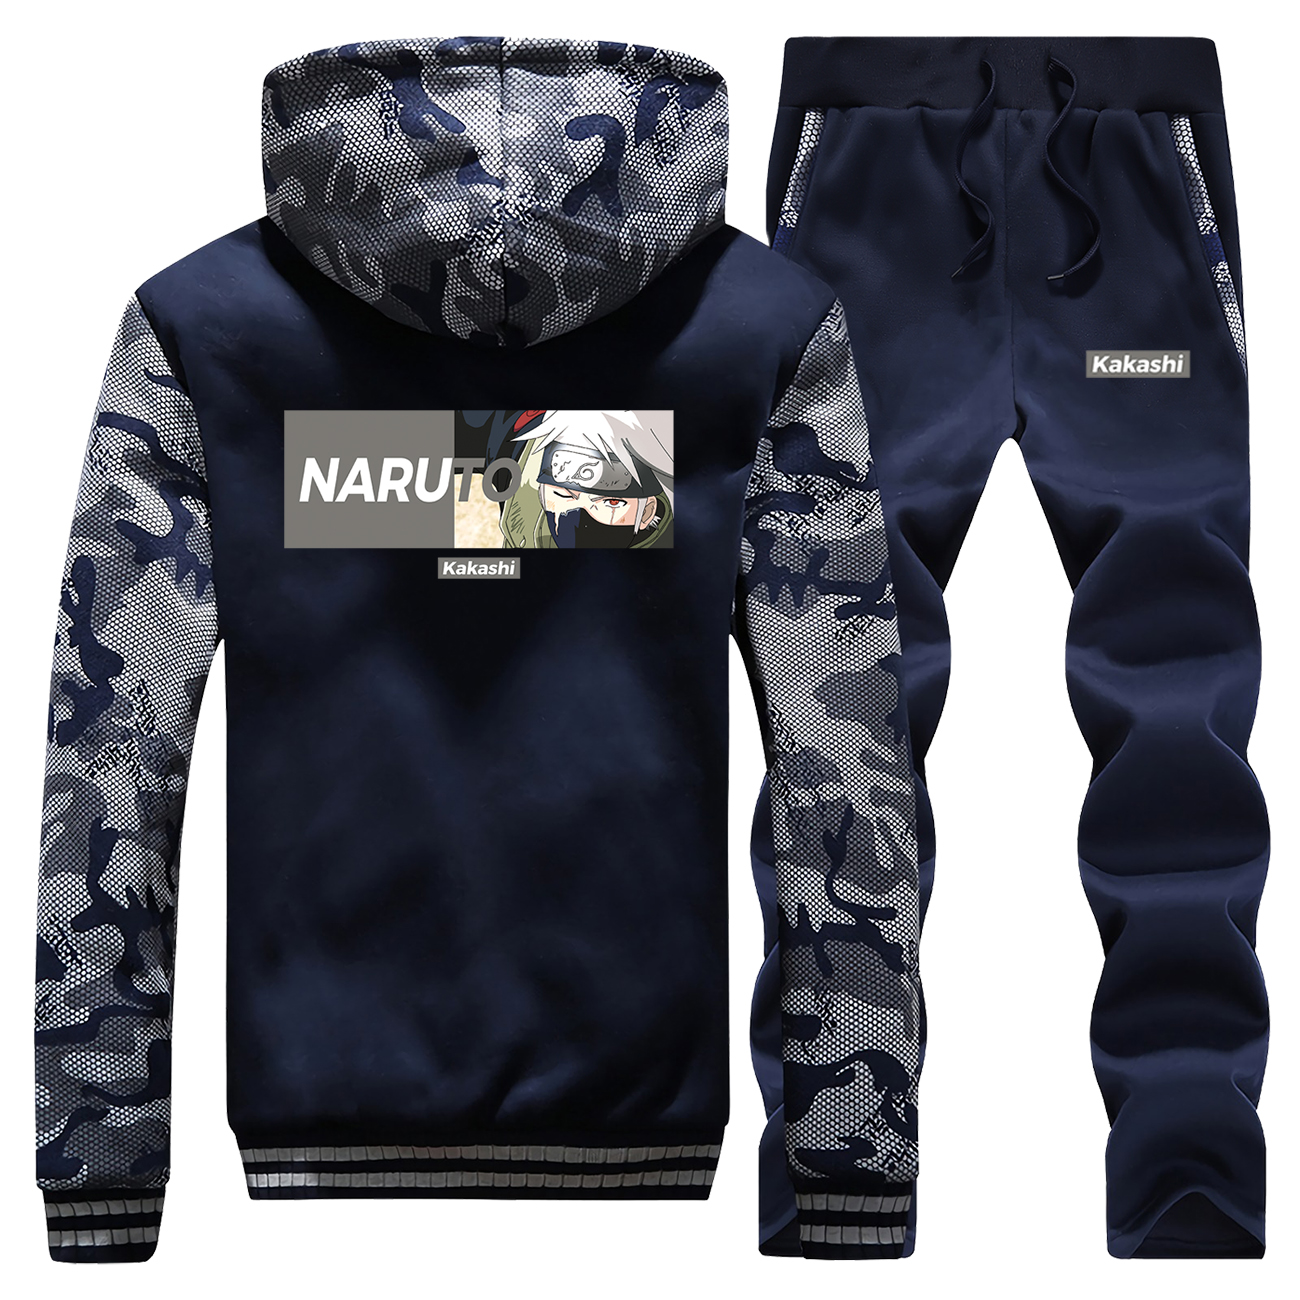 Naruto Male Thicken Sets Sports Sweatpants Kakashi Cool Character Clothing Sets 2020 New Arrival Men's Brand Two Piece Suit Warm